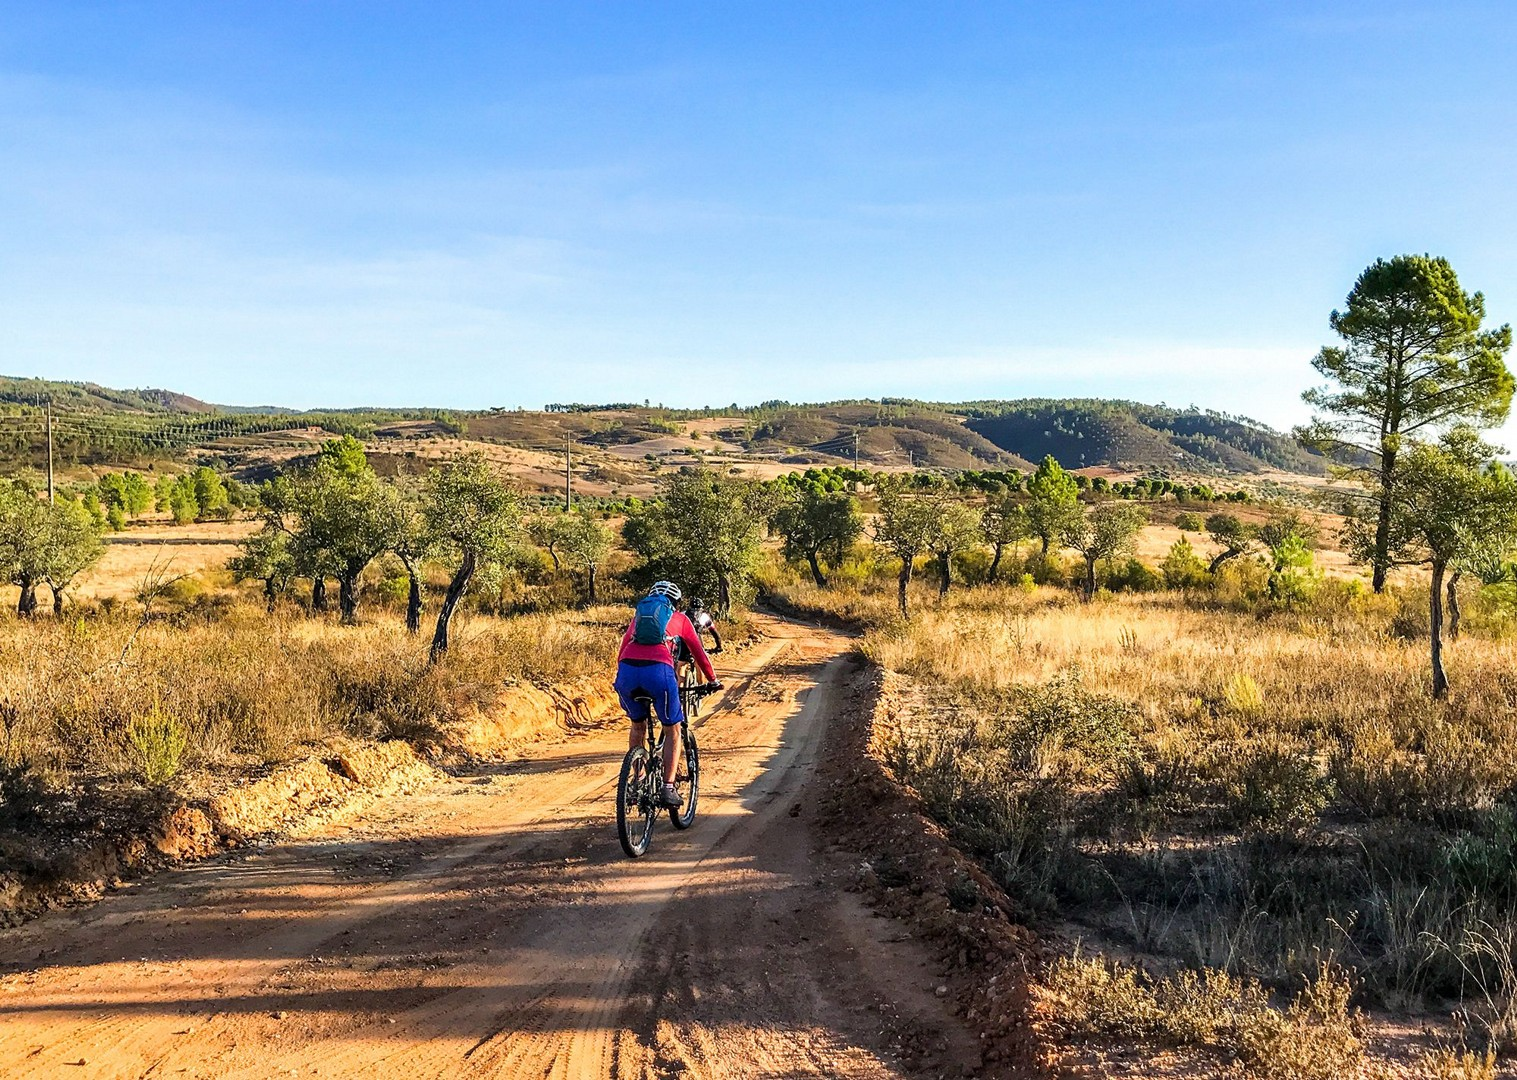 holidays-in-portugal-for-cyclists-mountain-bike-trip-with-saddle-skedaddle.jpg - Portugal - Roman Trails - Guided Mountain Bike Holiday - Mountain Biking